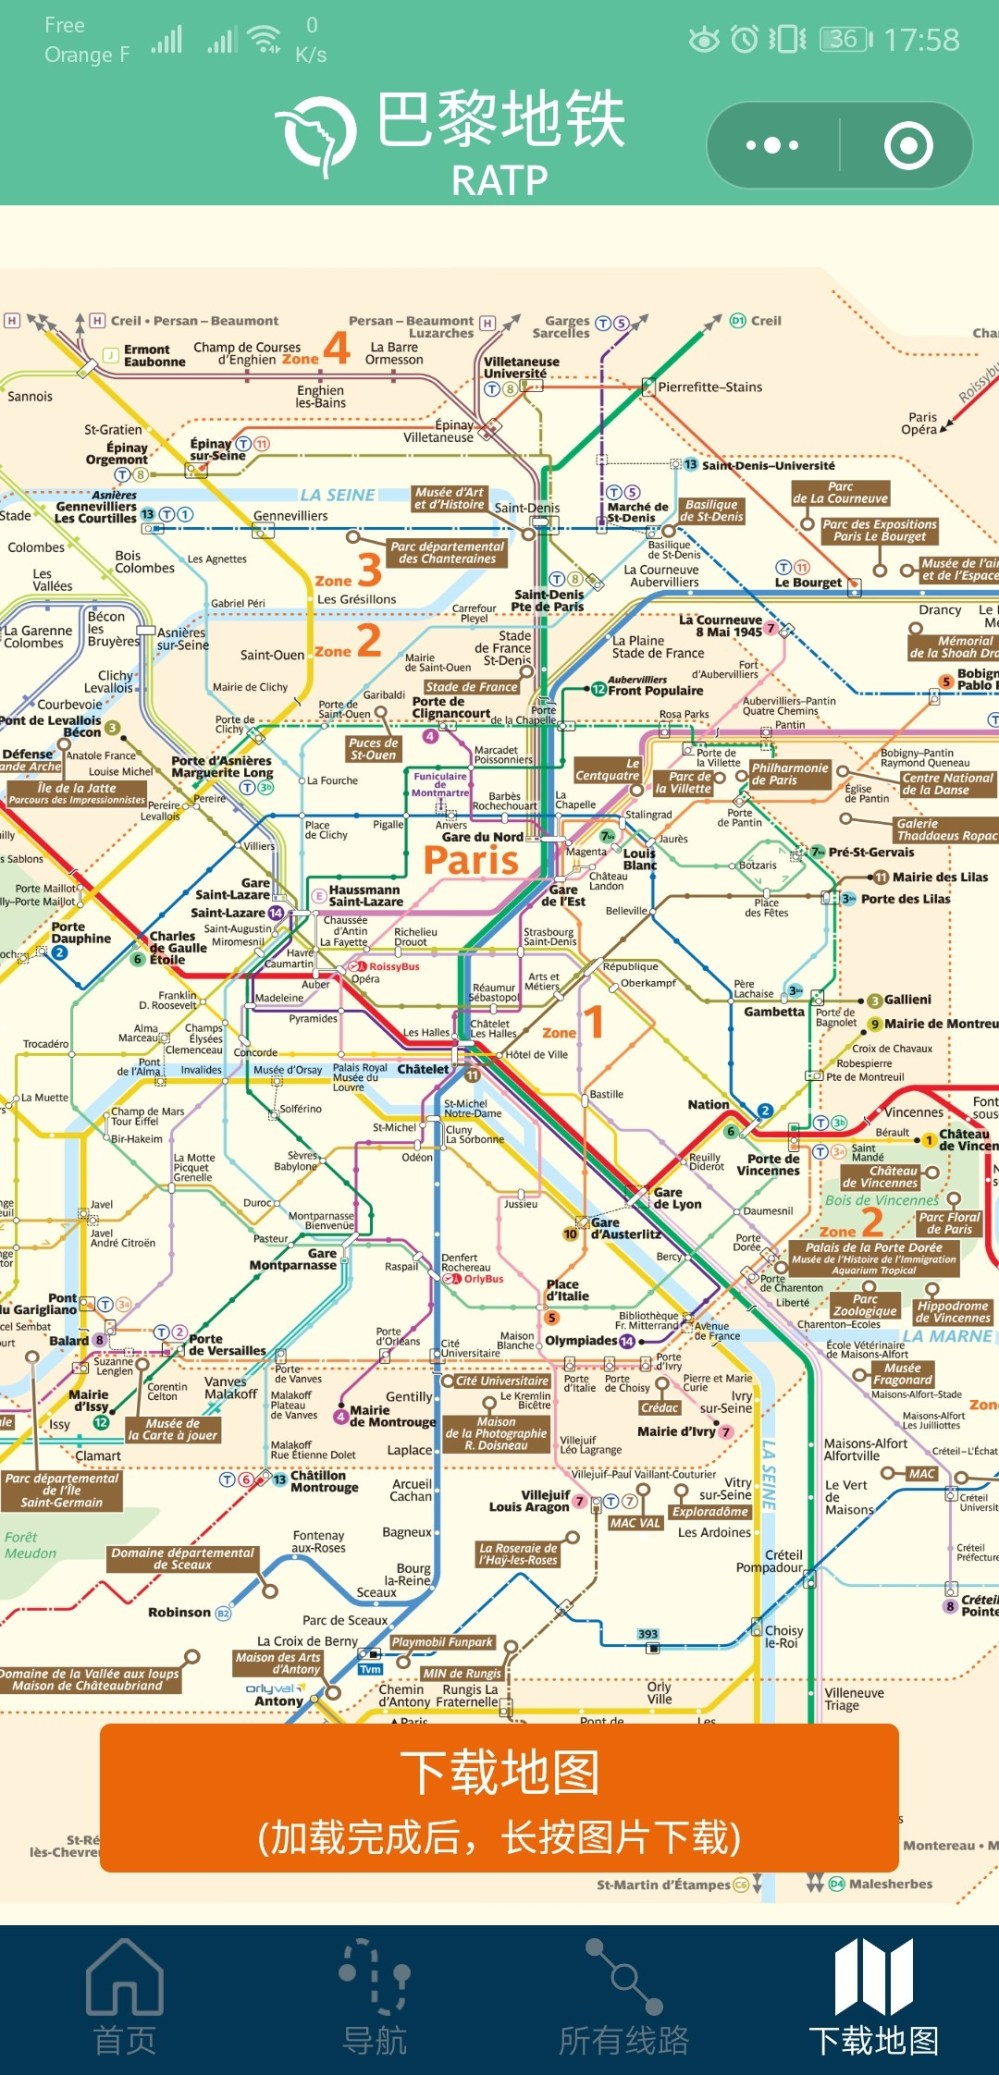 RATP WeChat mini-program Paris Metro Map